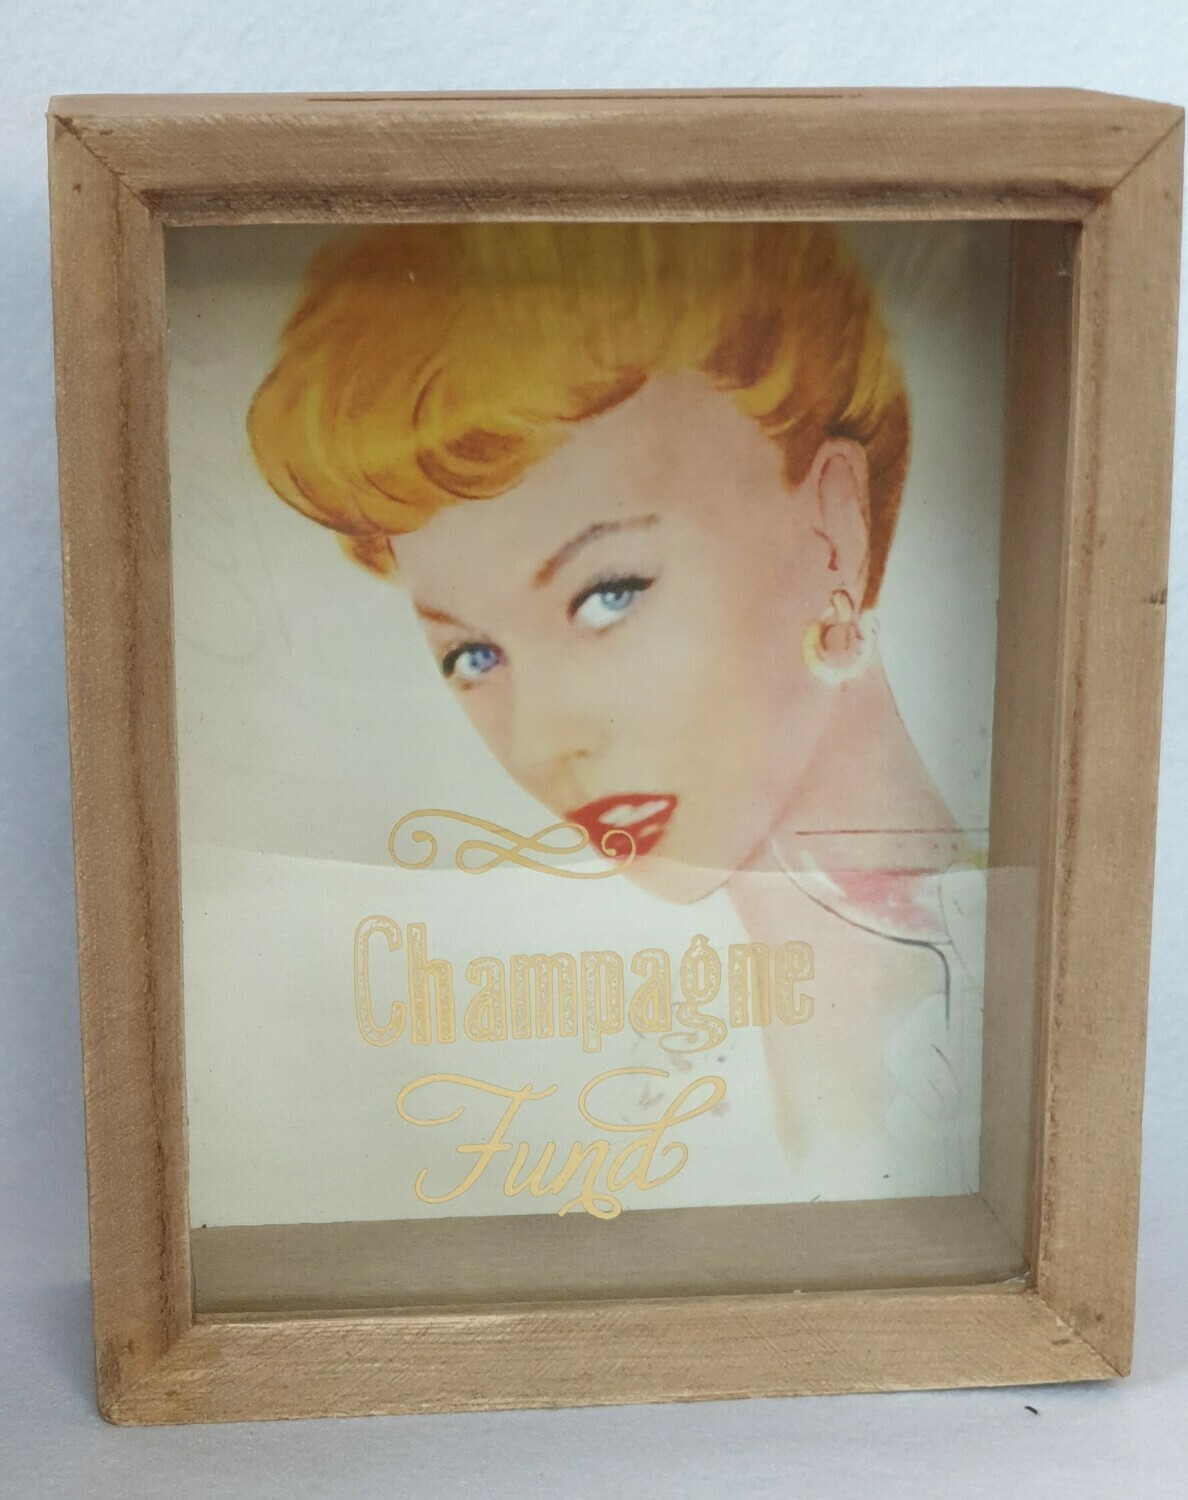 'Champagne Fund' money box. Retro